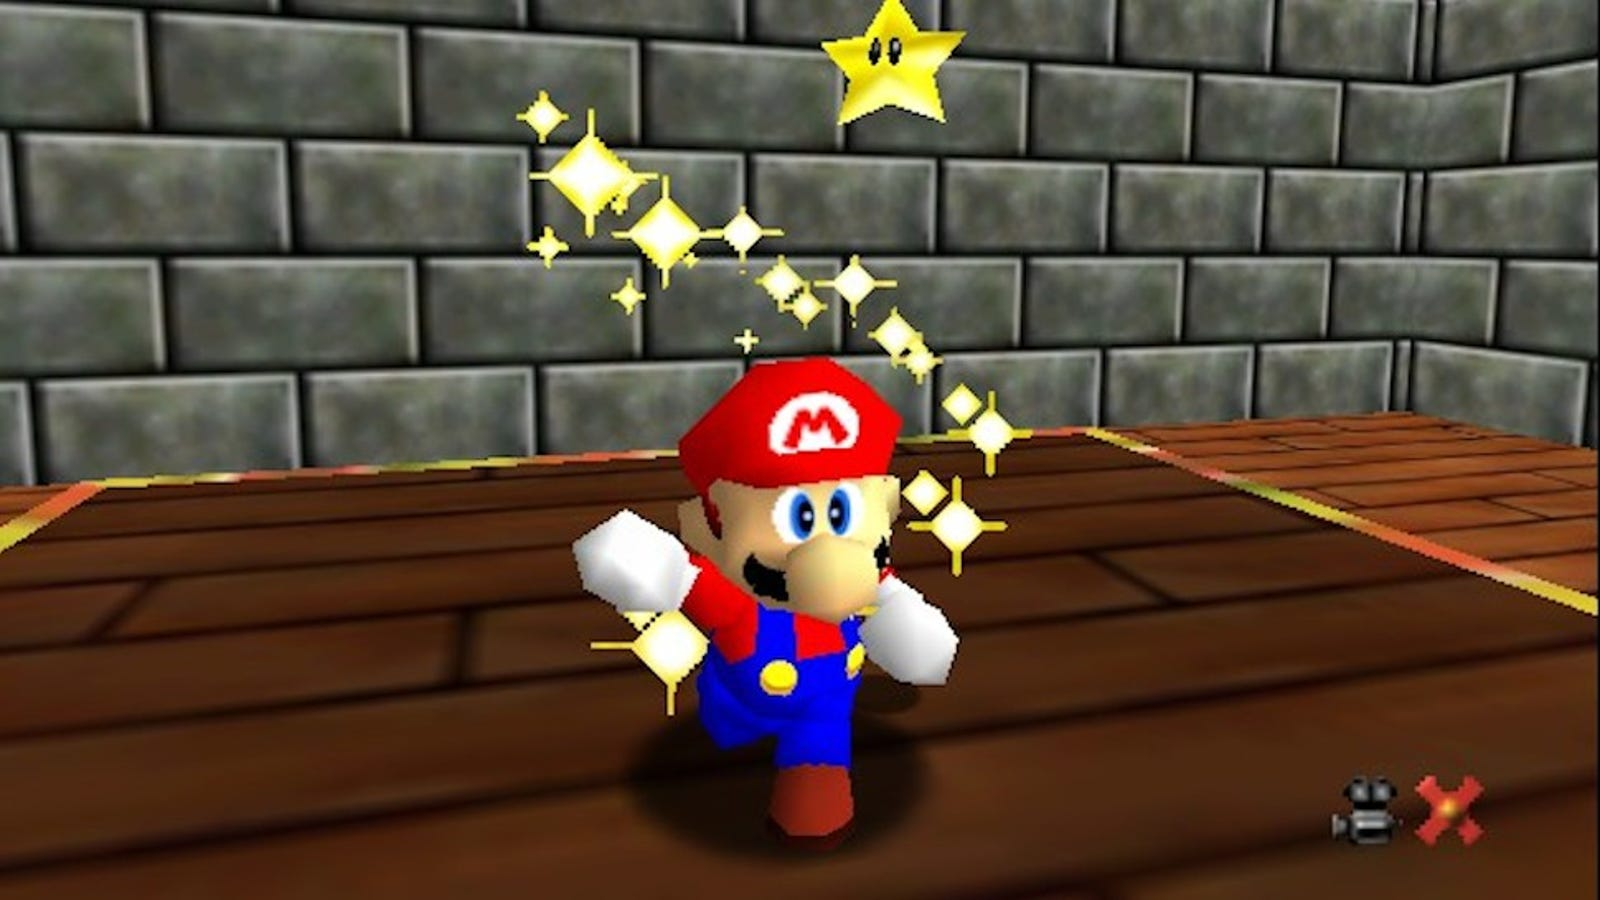 Playing Super Mario 64 Makes Your Brain Bigger